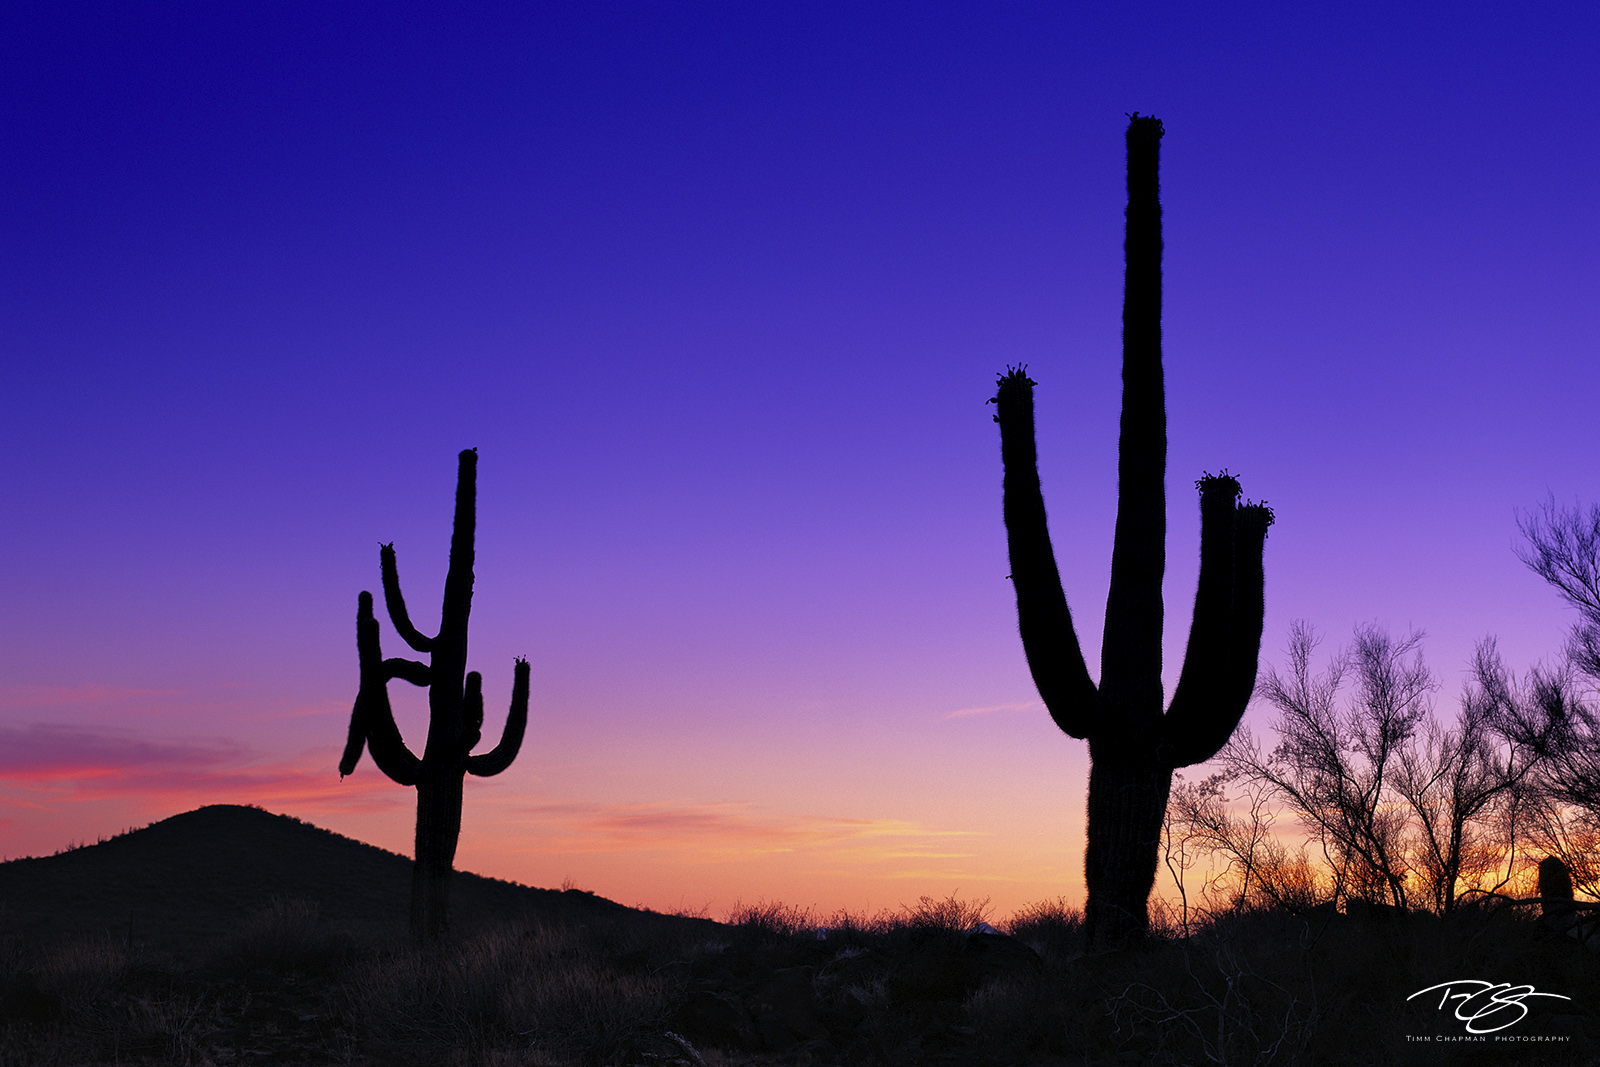 Giant Saguaro cacti stand vigil as night approaches